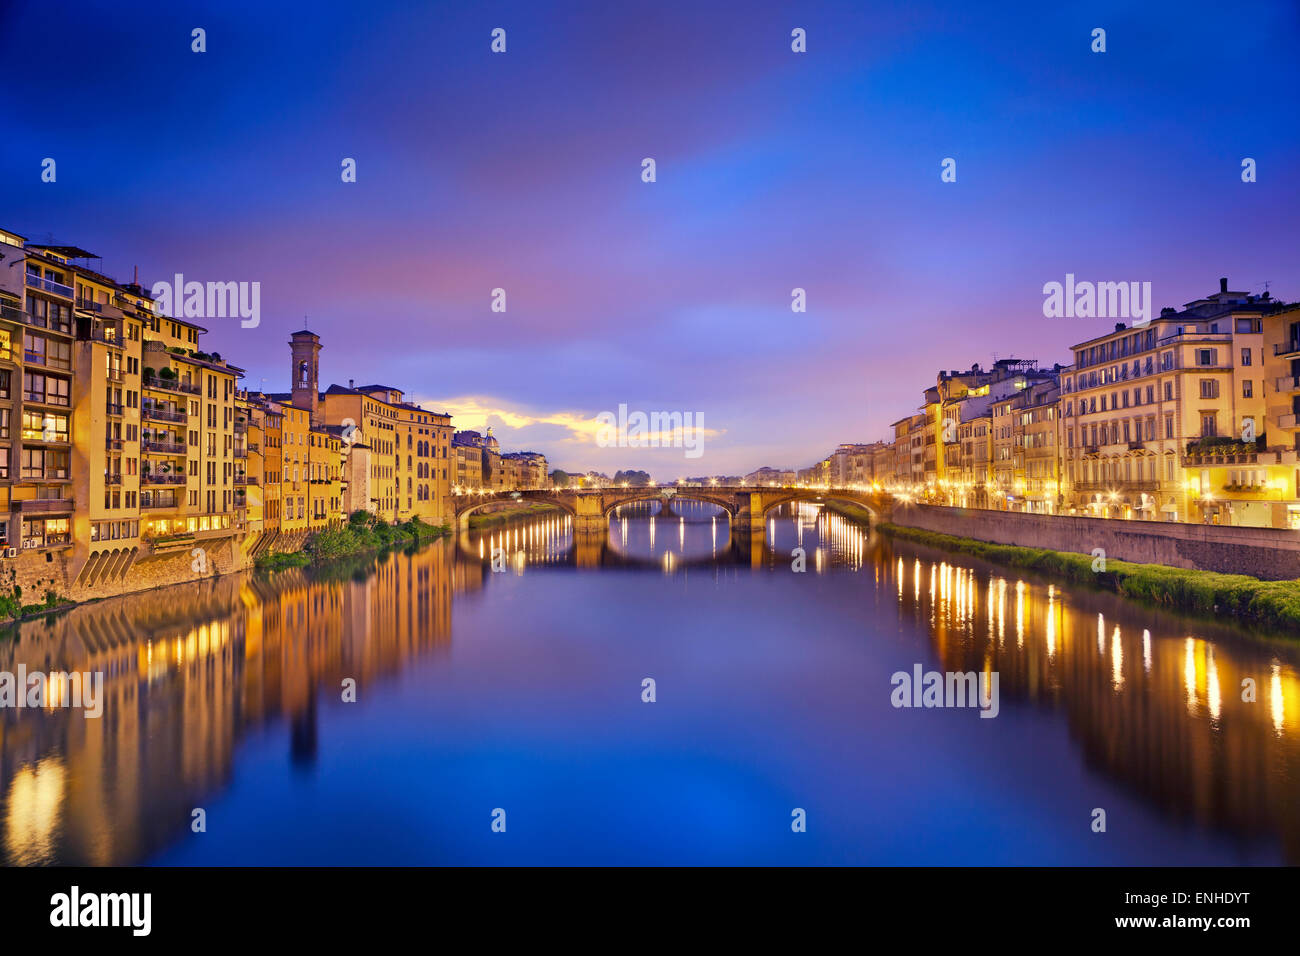 Florence. Image of Florence taken from Ponte Vecchio at dusk. - Stock Image